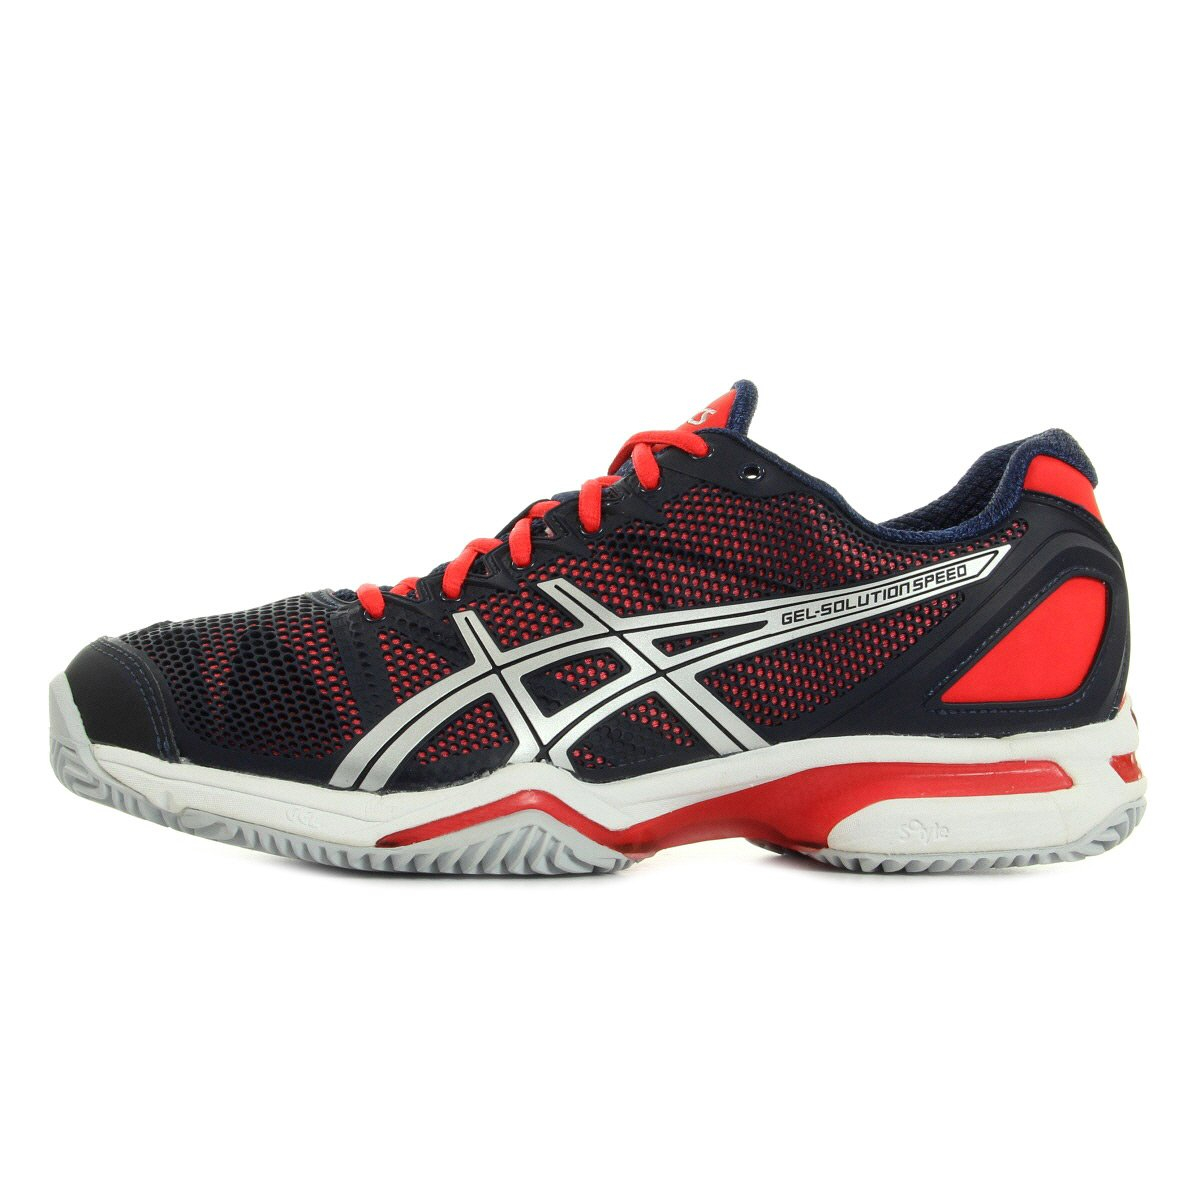 Zapatillas de Padel Asics Speed Clay, Color Rojo, Talla 10 us ...